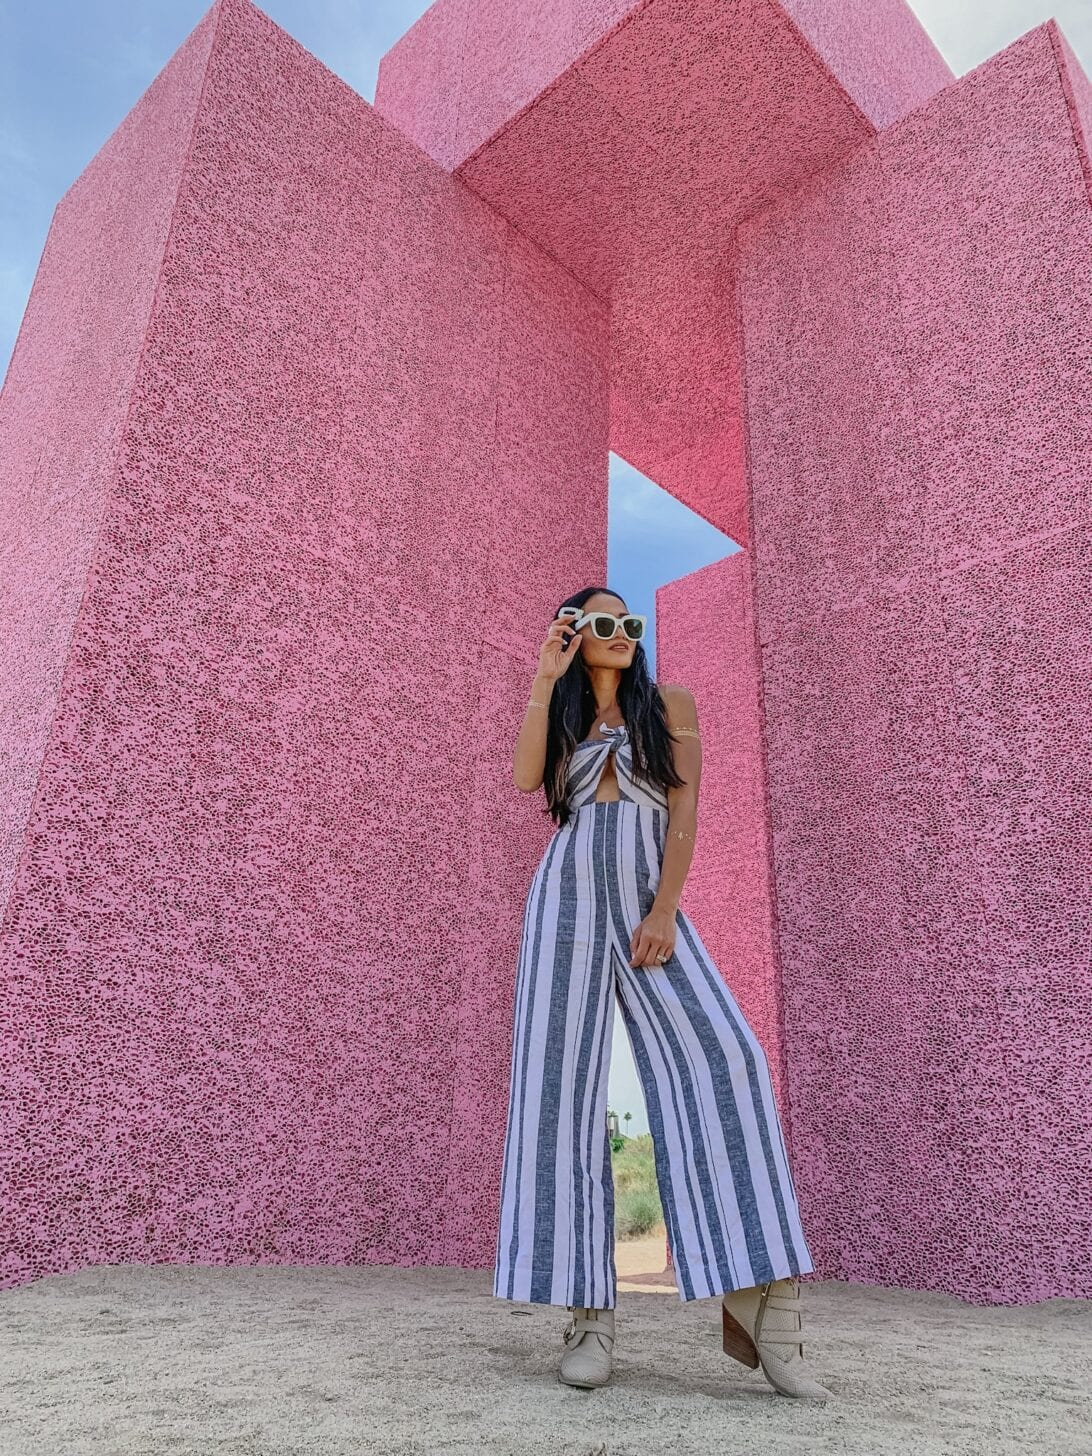 PINK WALL, JUMPSUIT, WHITE SUNGLASSES